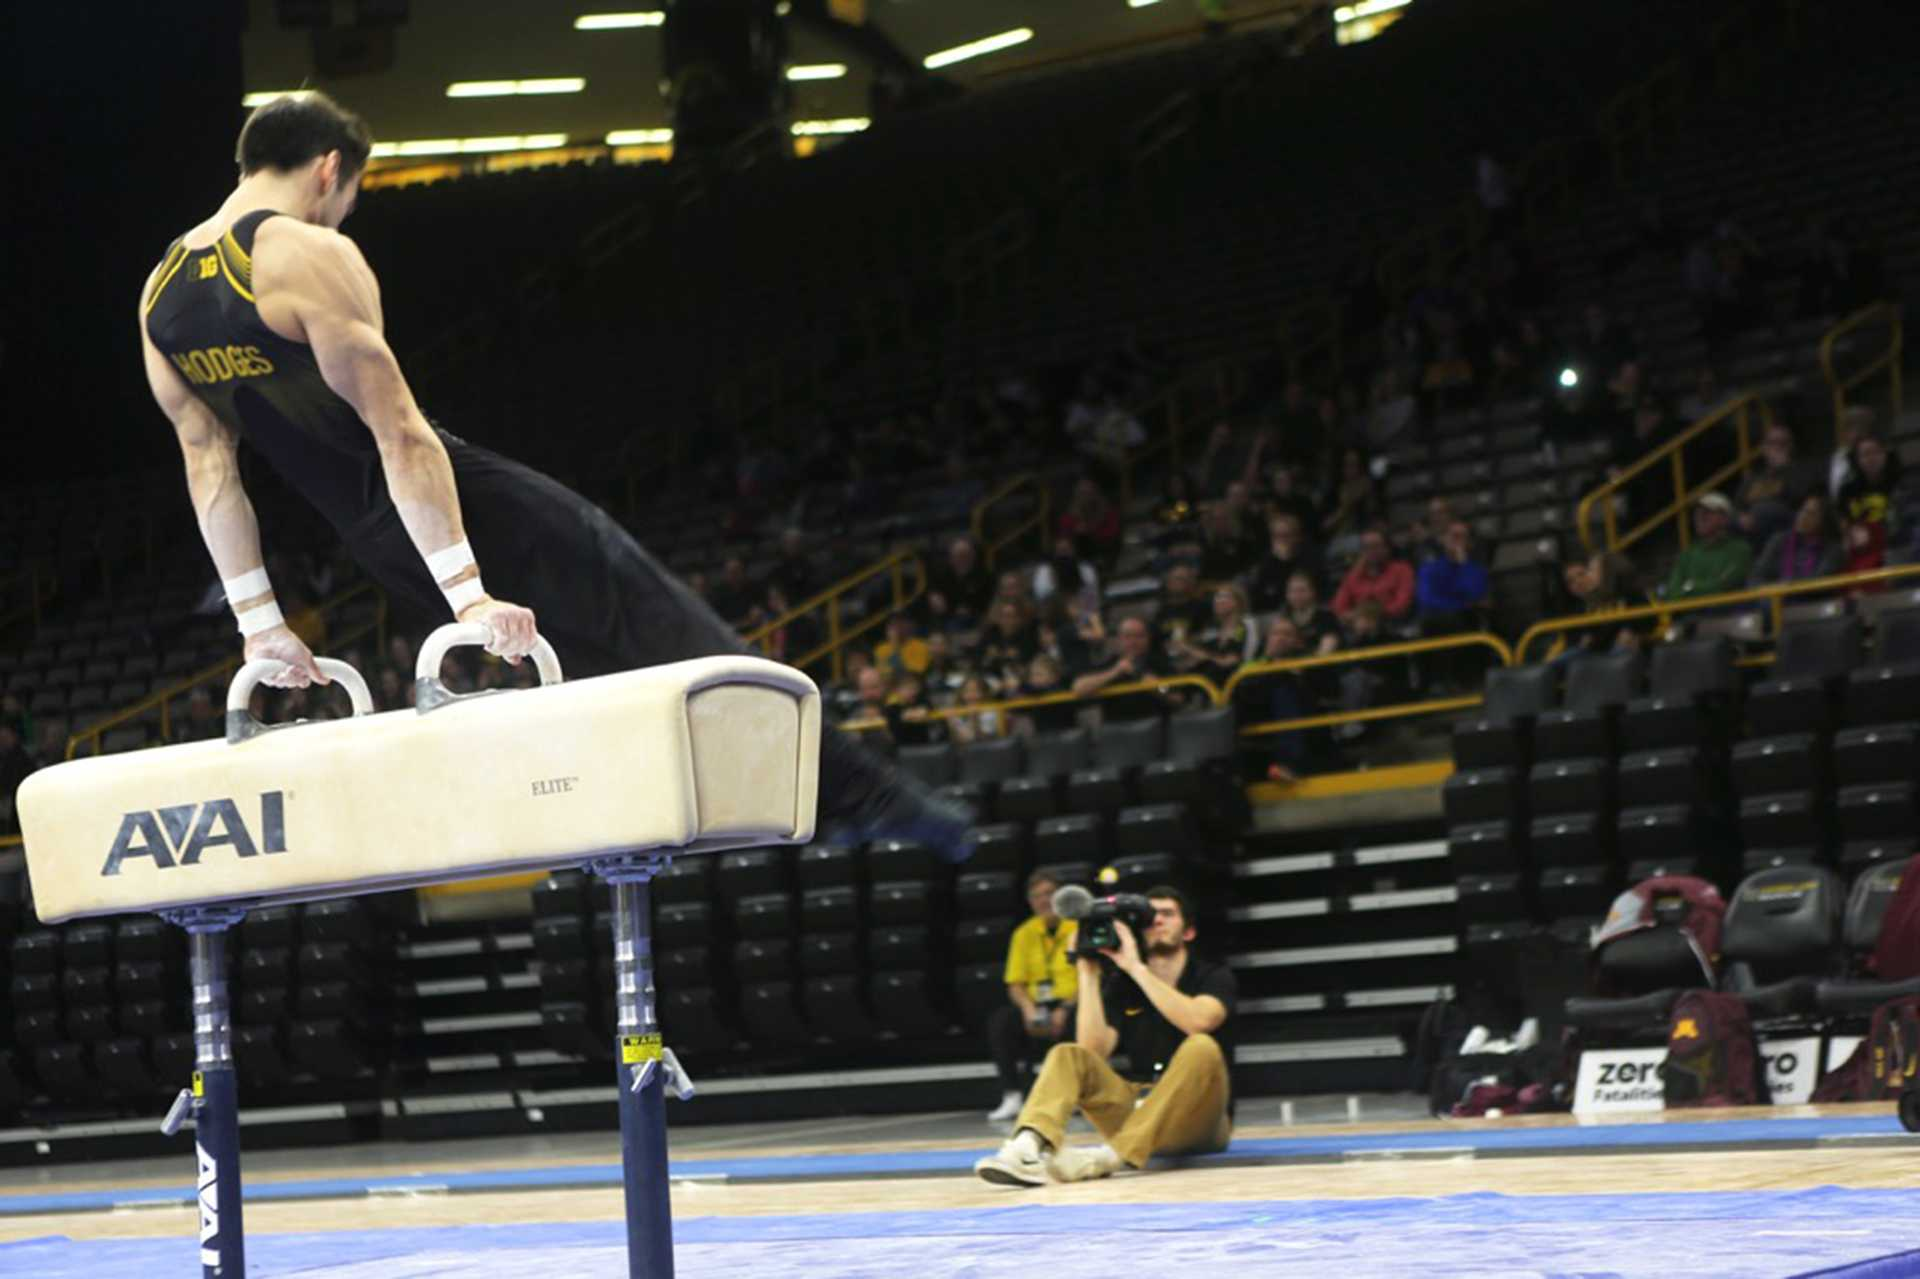 Men's And Women's Gymnastics Have Their Work Cut Out For Them This Weekend